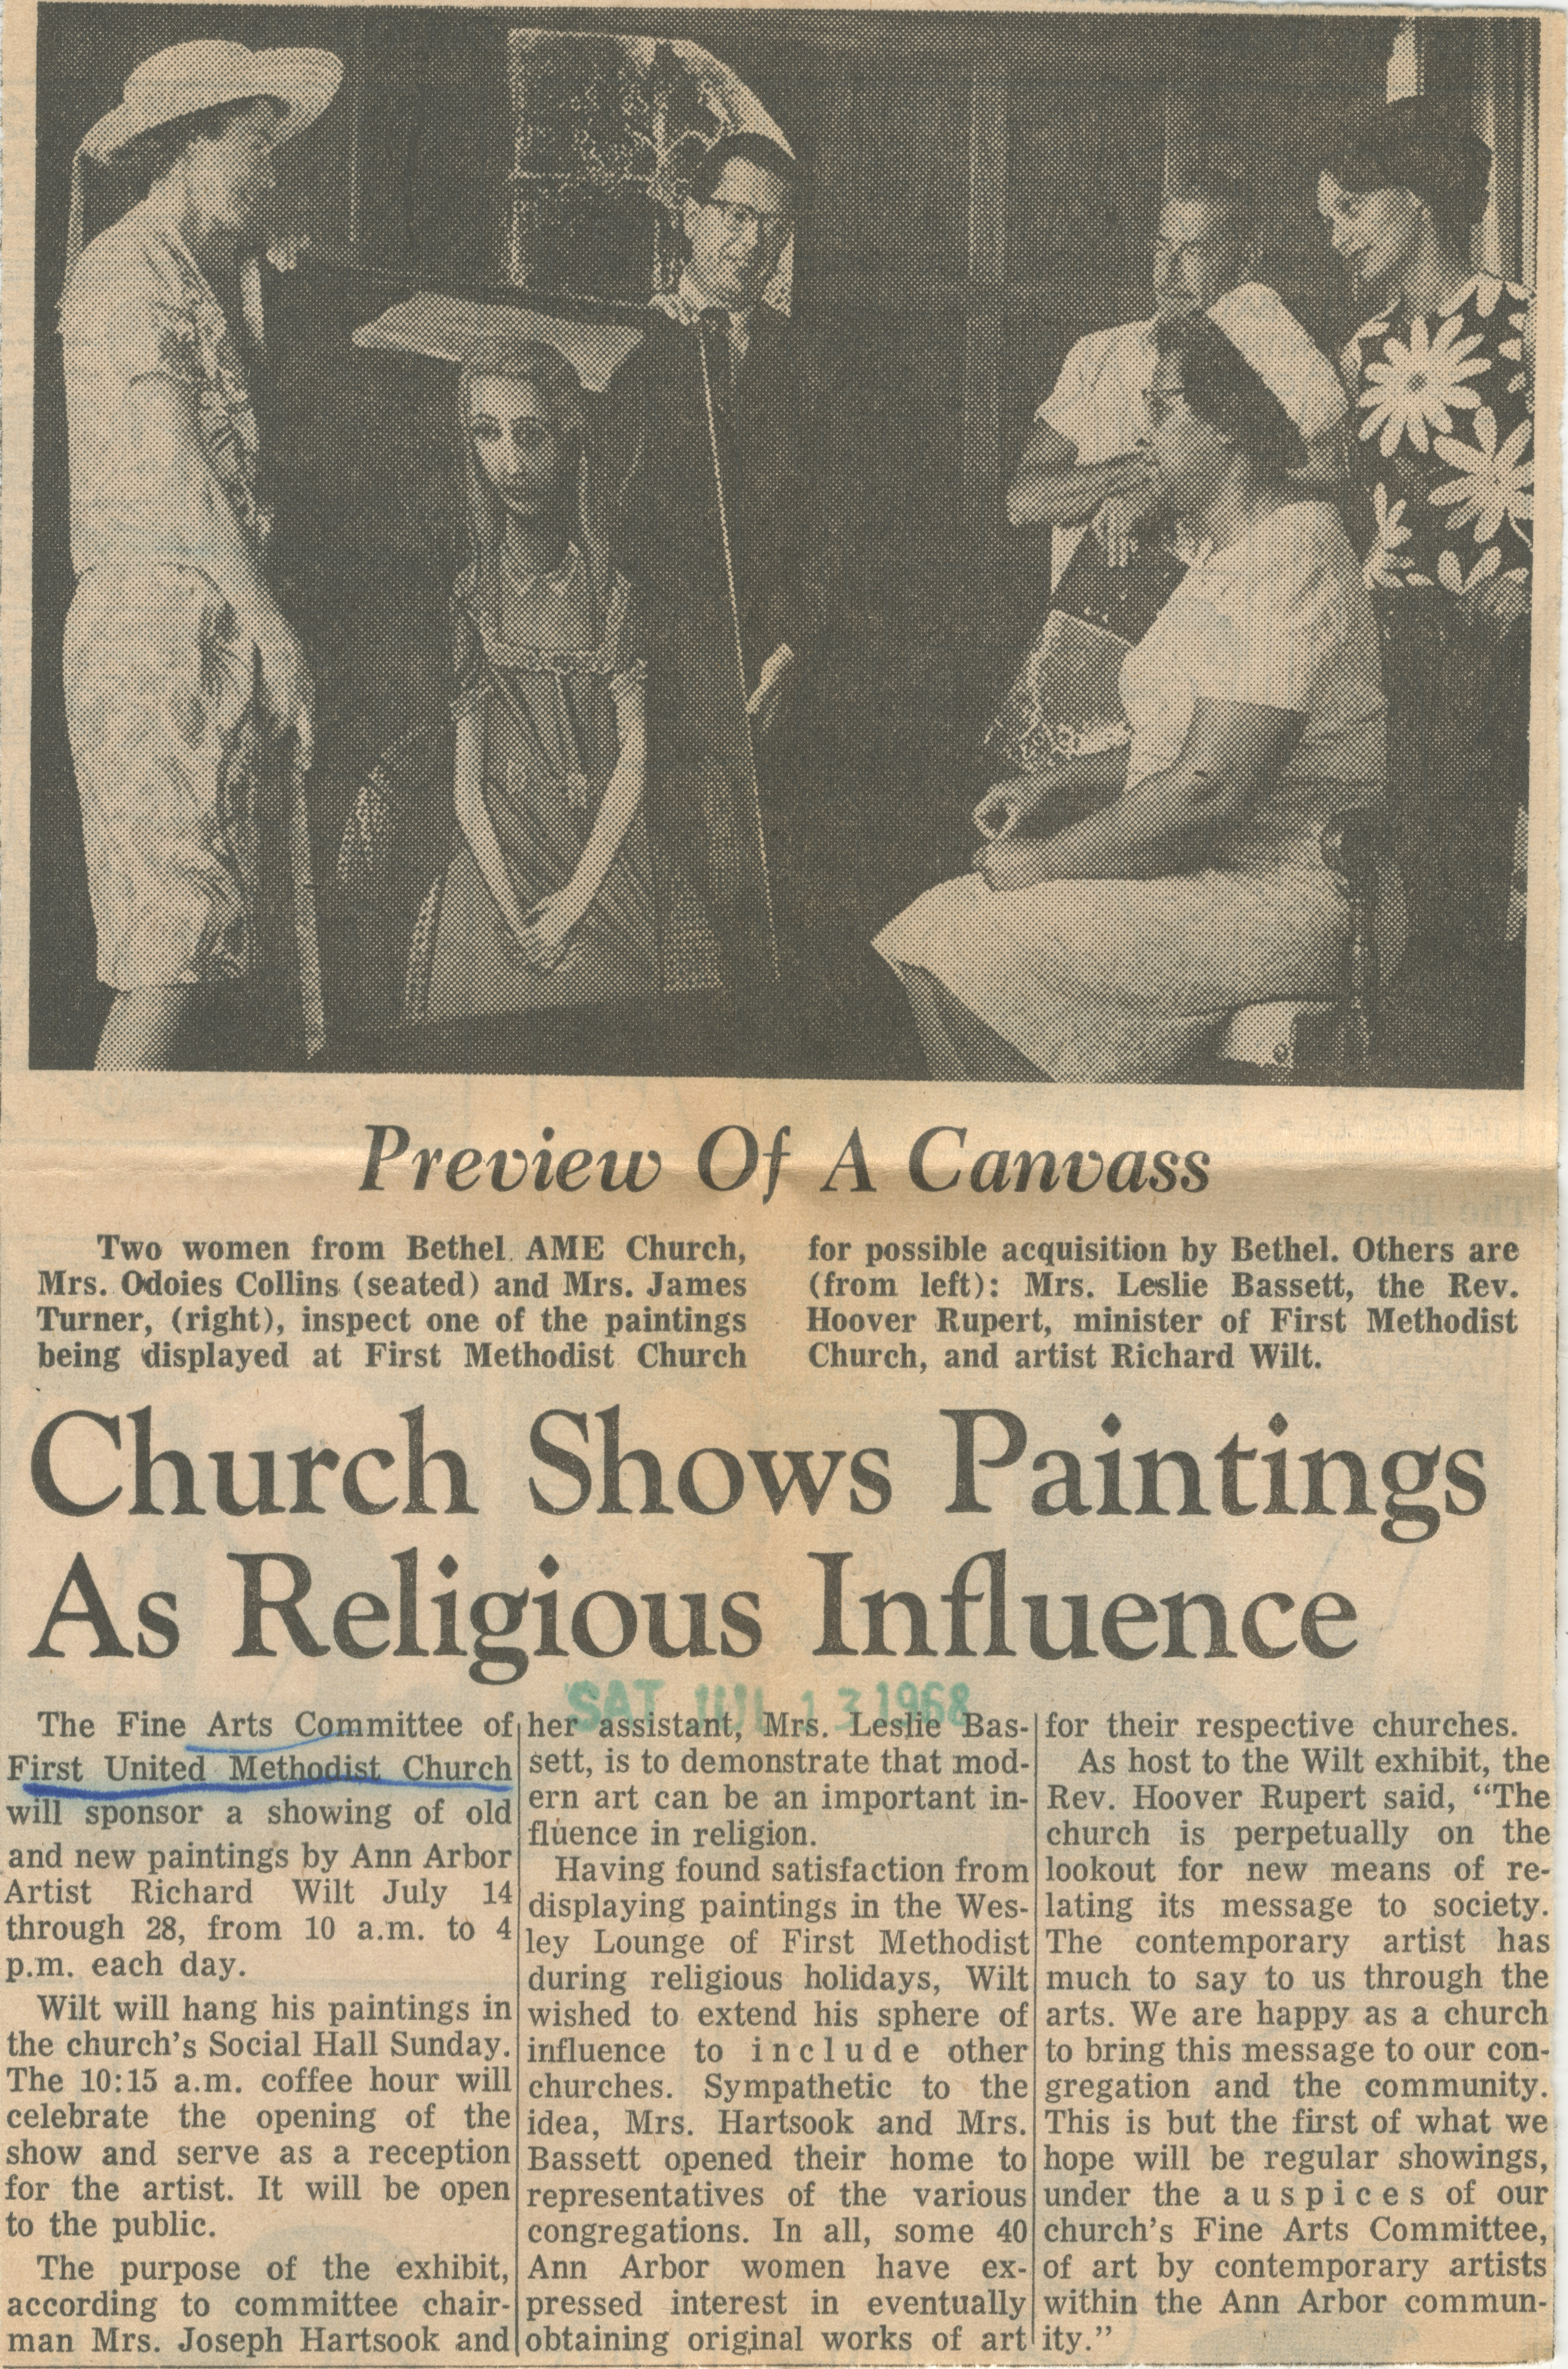 Church Shows Paintings As Religious Influence image